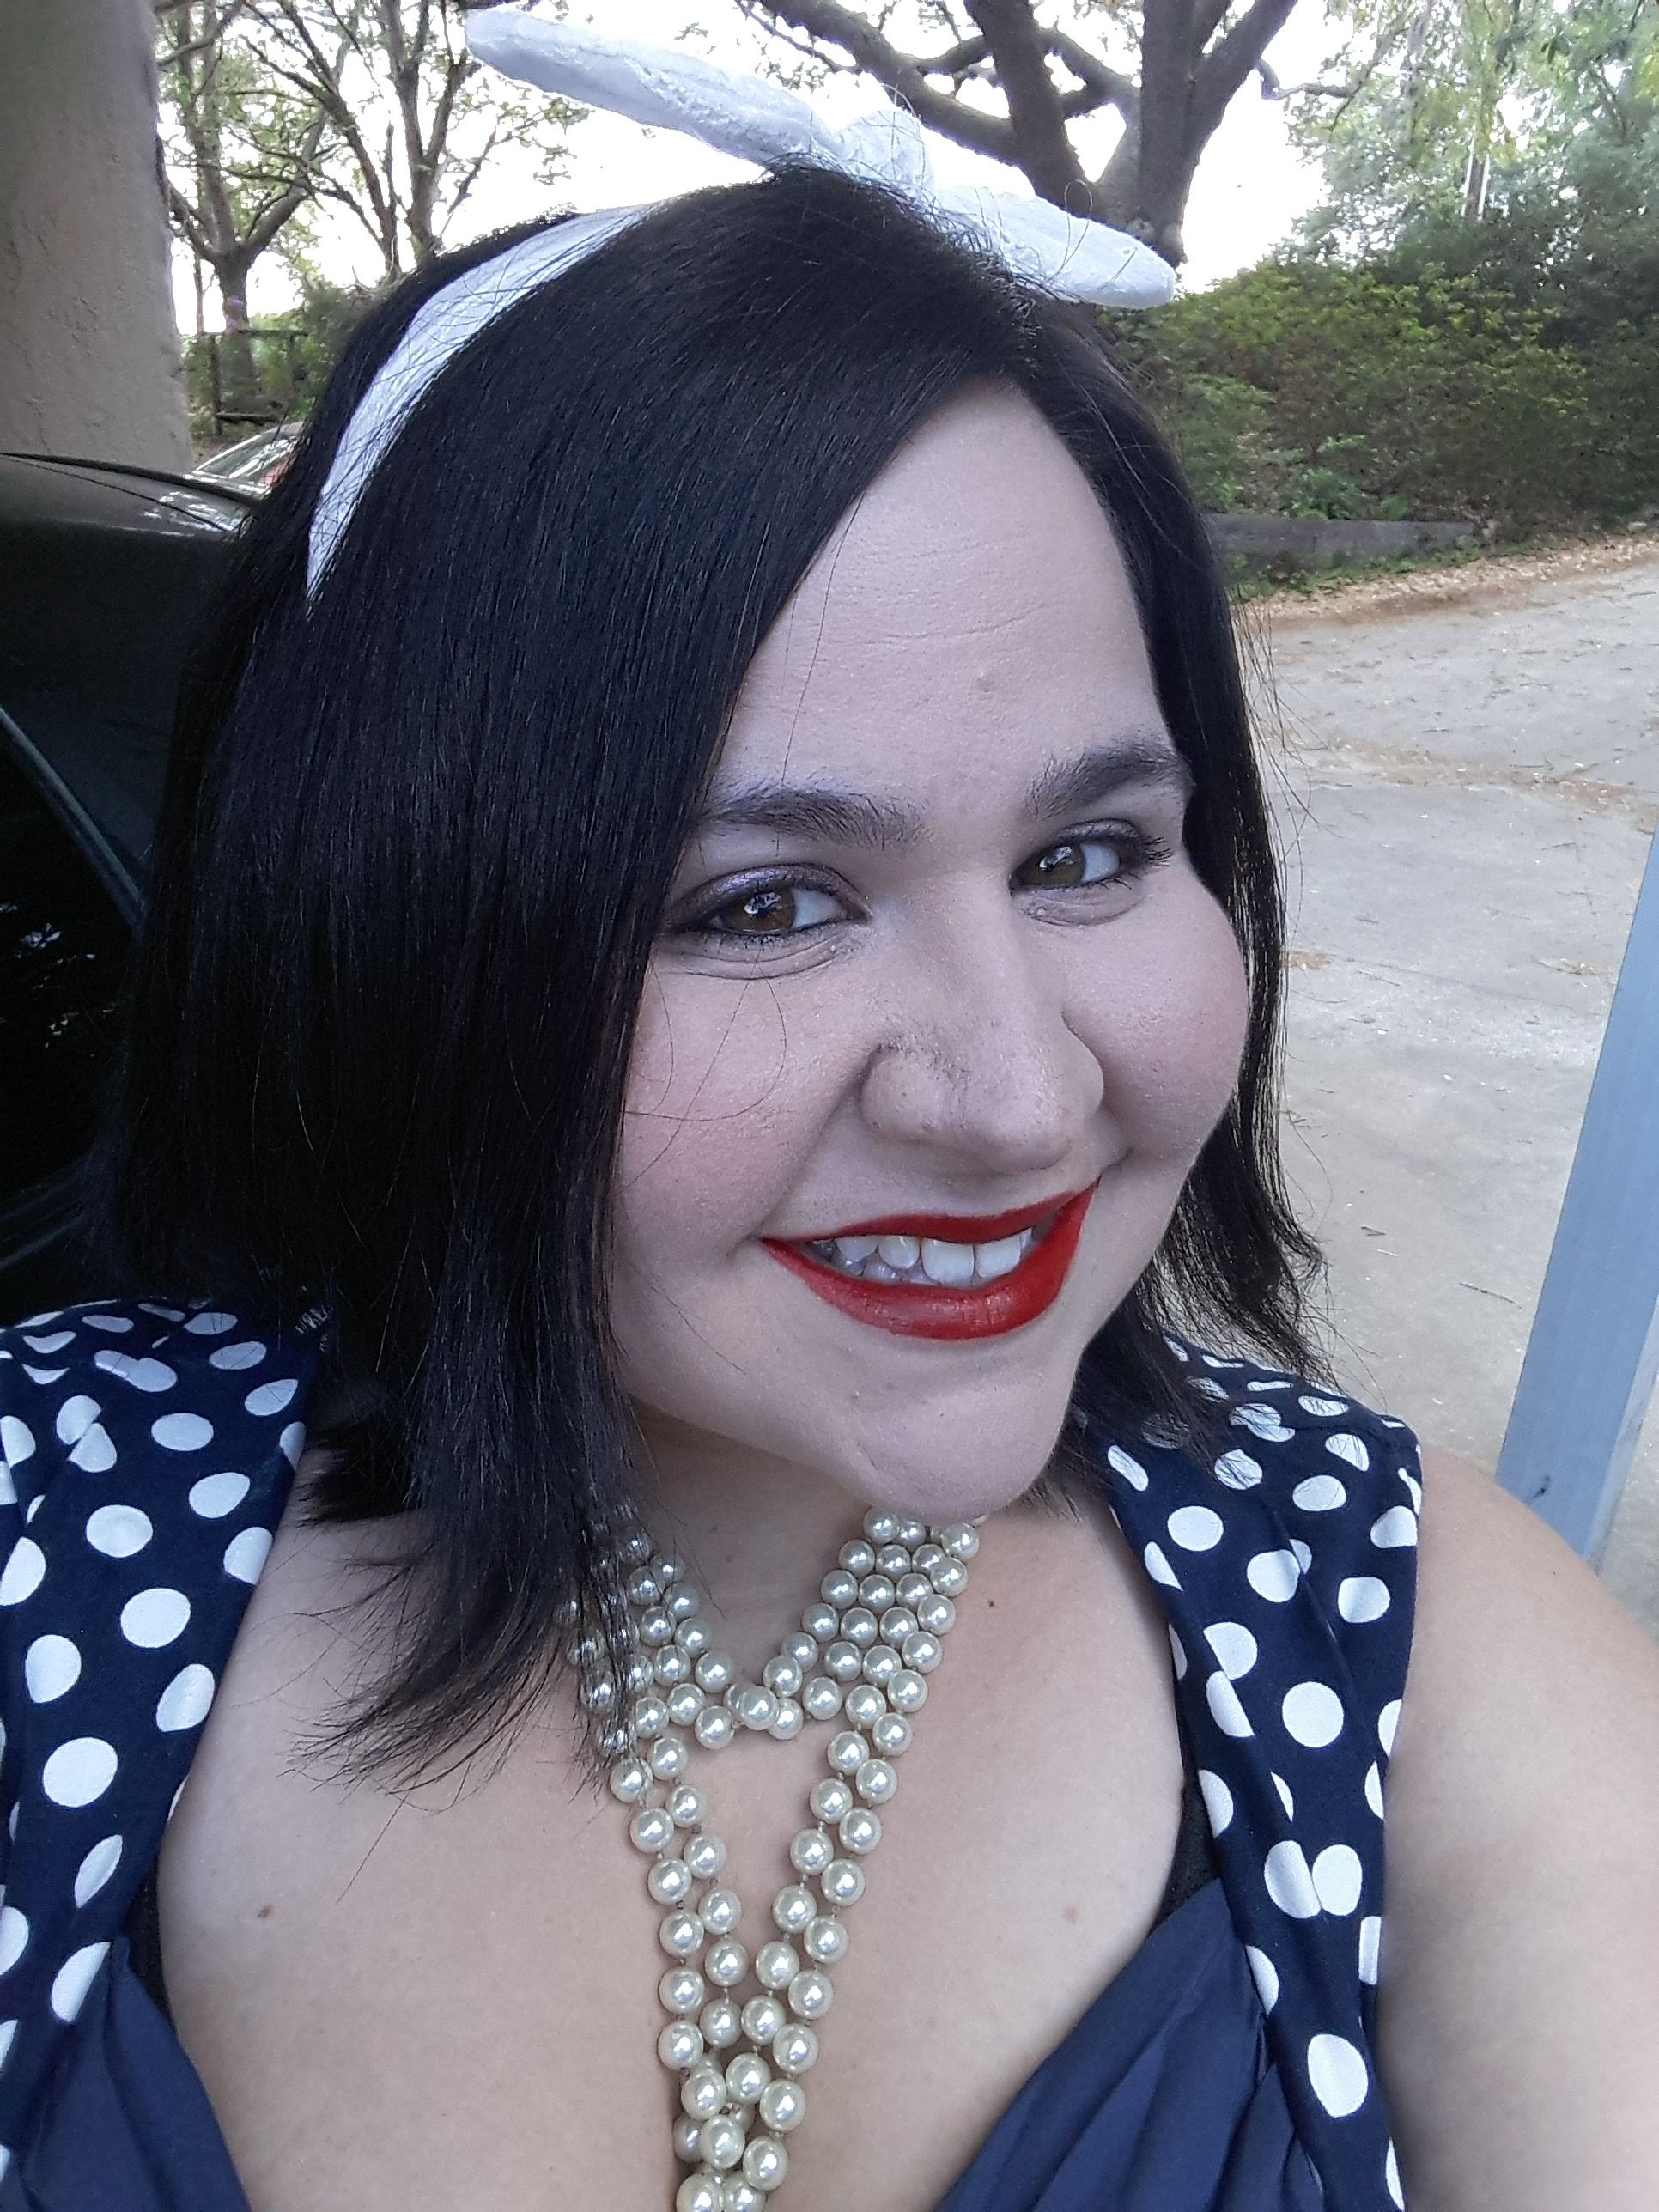 catholic singles in tallahassee Doulike makes online dating in tallahassee, fl simple if you cannot help feeling that all you need is a new acquaintance, true love or a friend, we found an easy way.